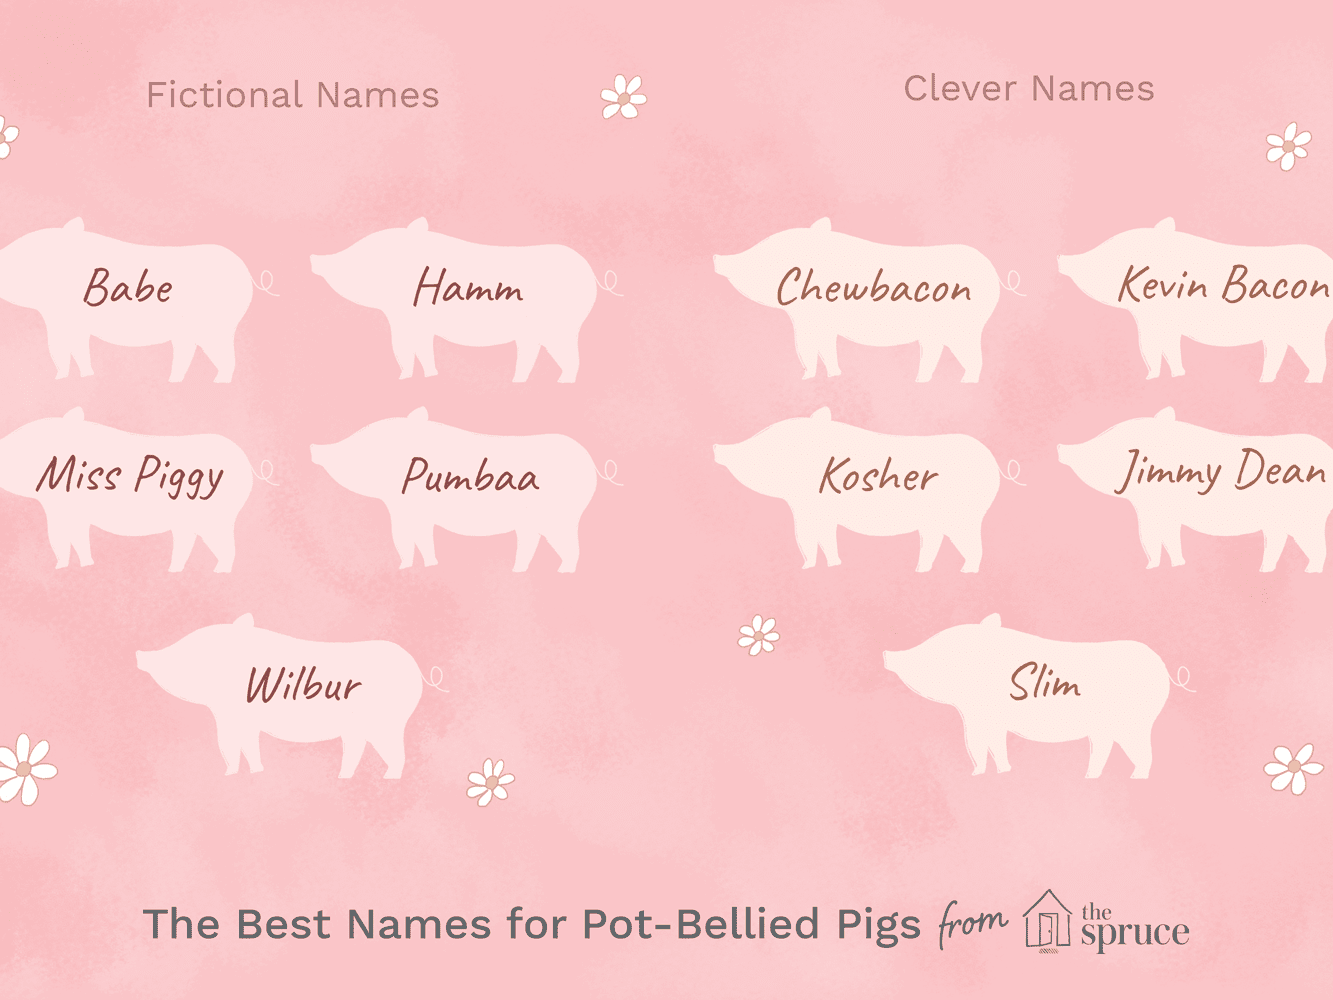 46 Names For Pet Pot Bellied Pigs